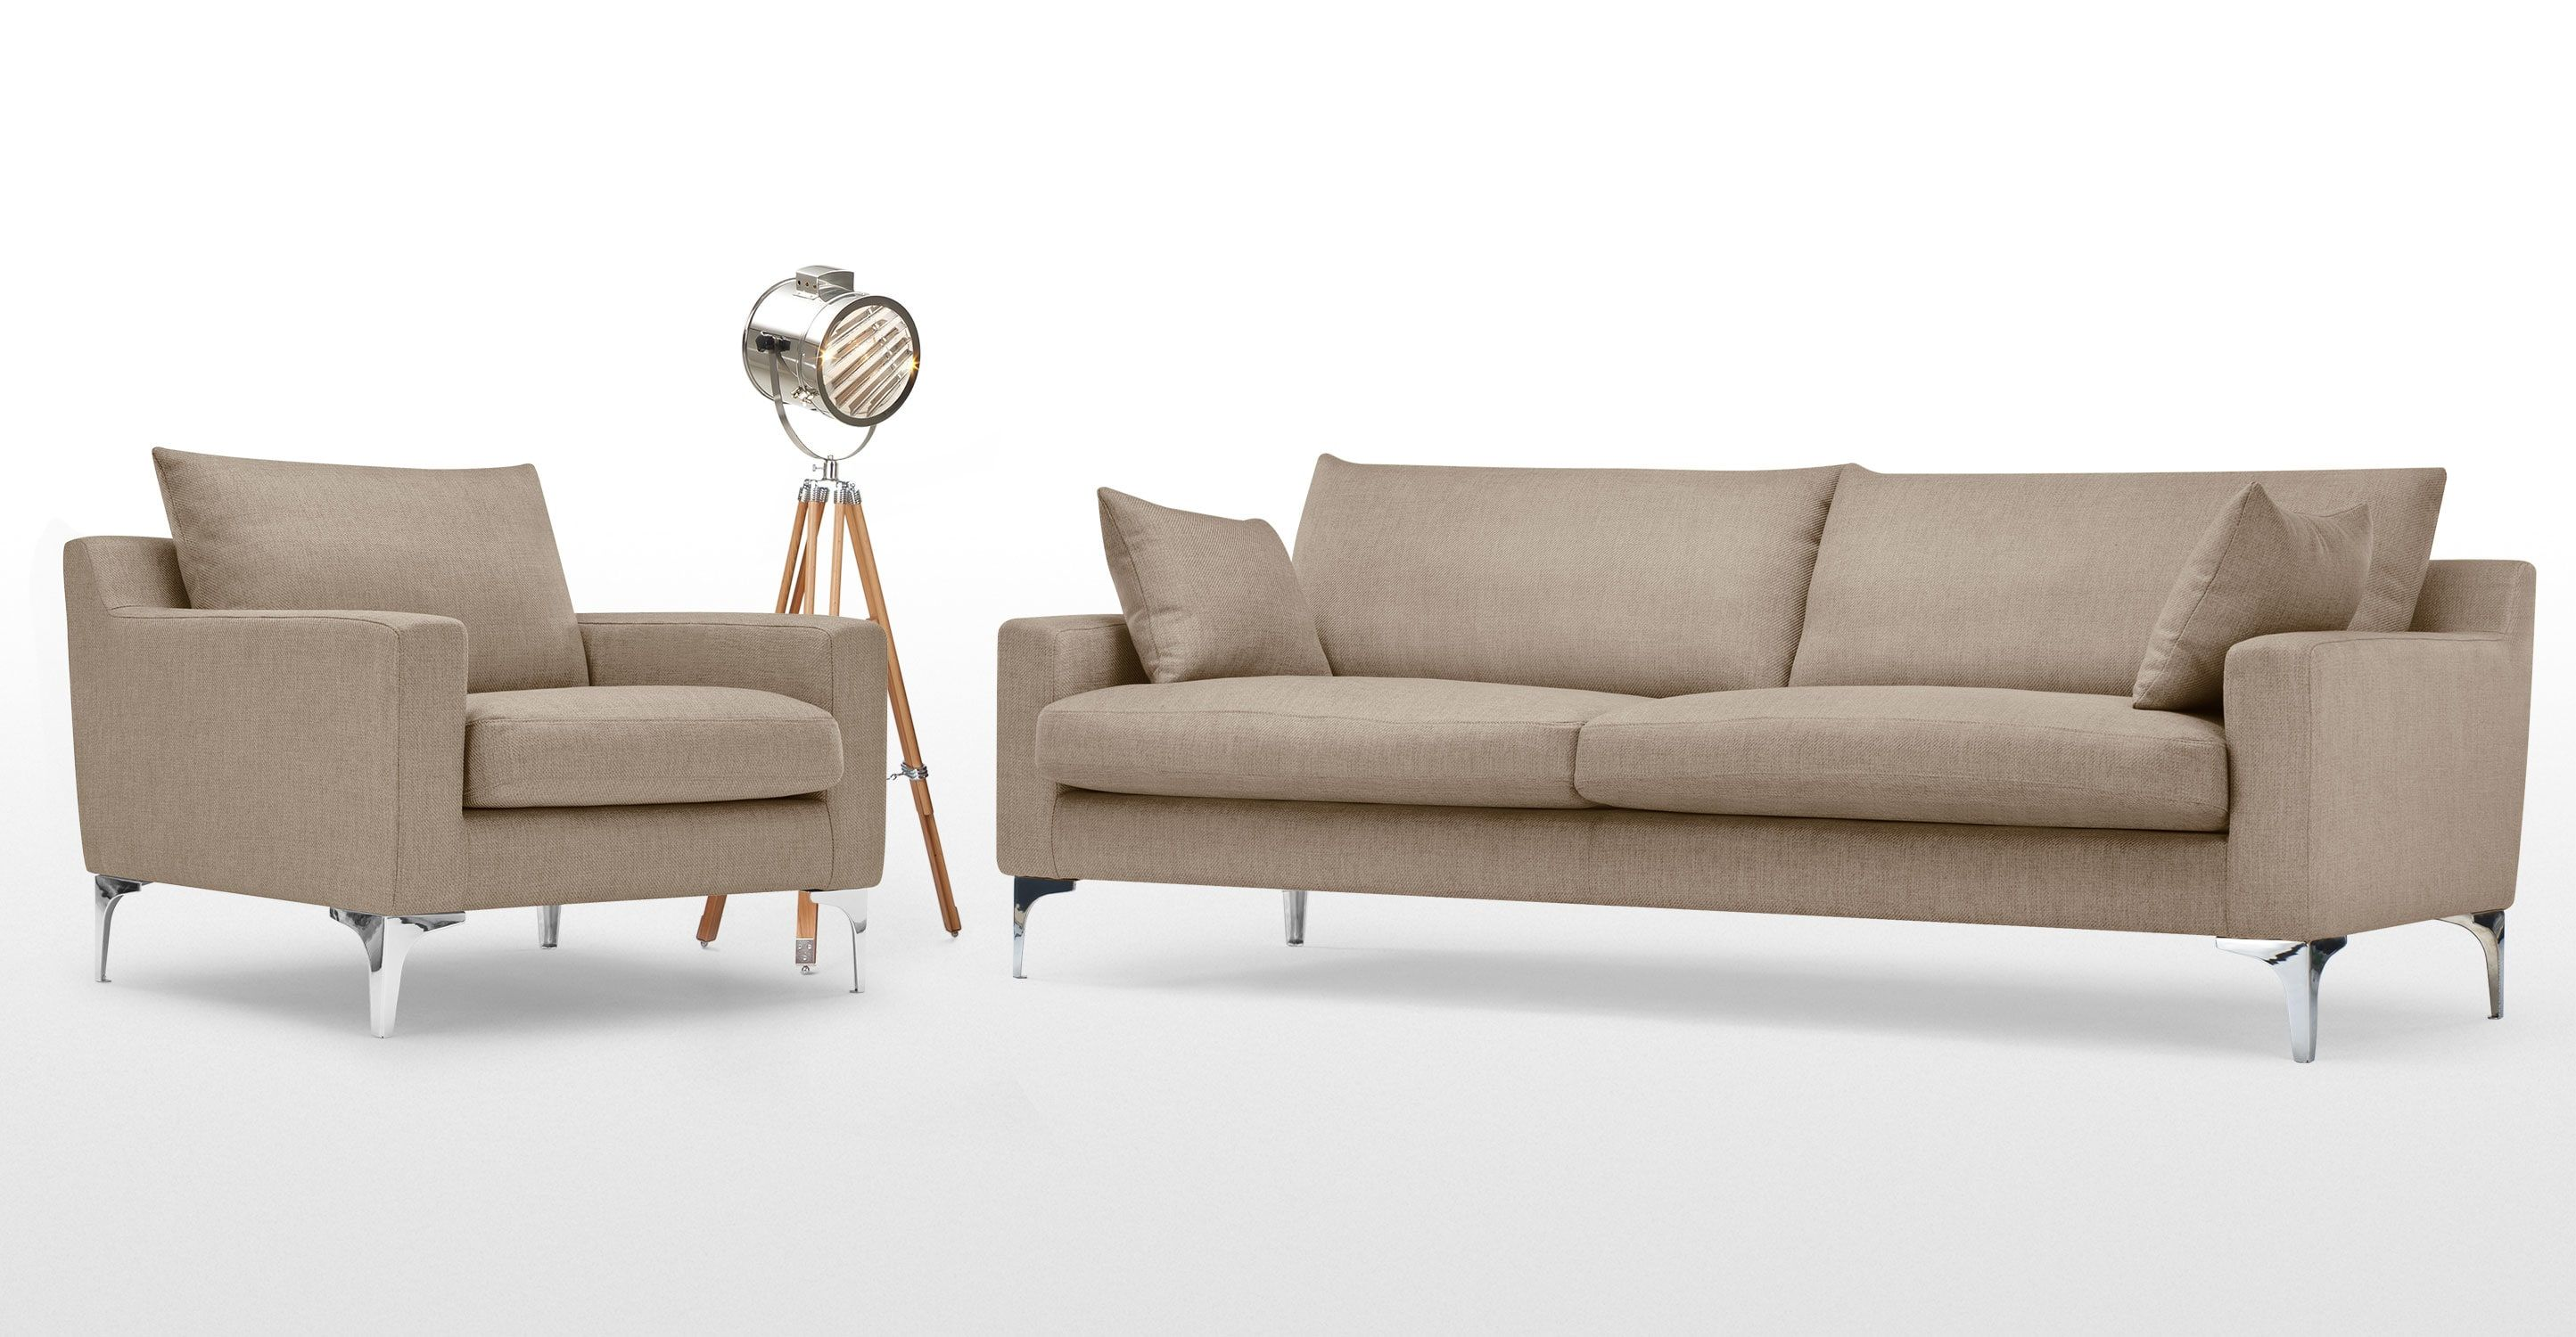 Mendini 3 Seater Sofa, Soft Taupe From Made.com. Neutral. With An  Irresistibly Inviting Shape, The Contemporary Mendini Is The Perfect Place  To Esca.